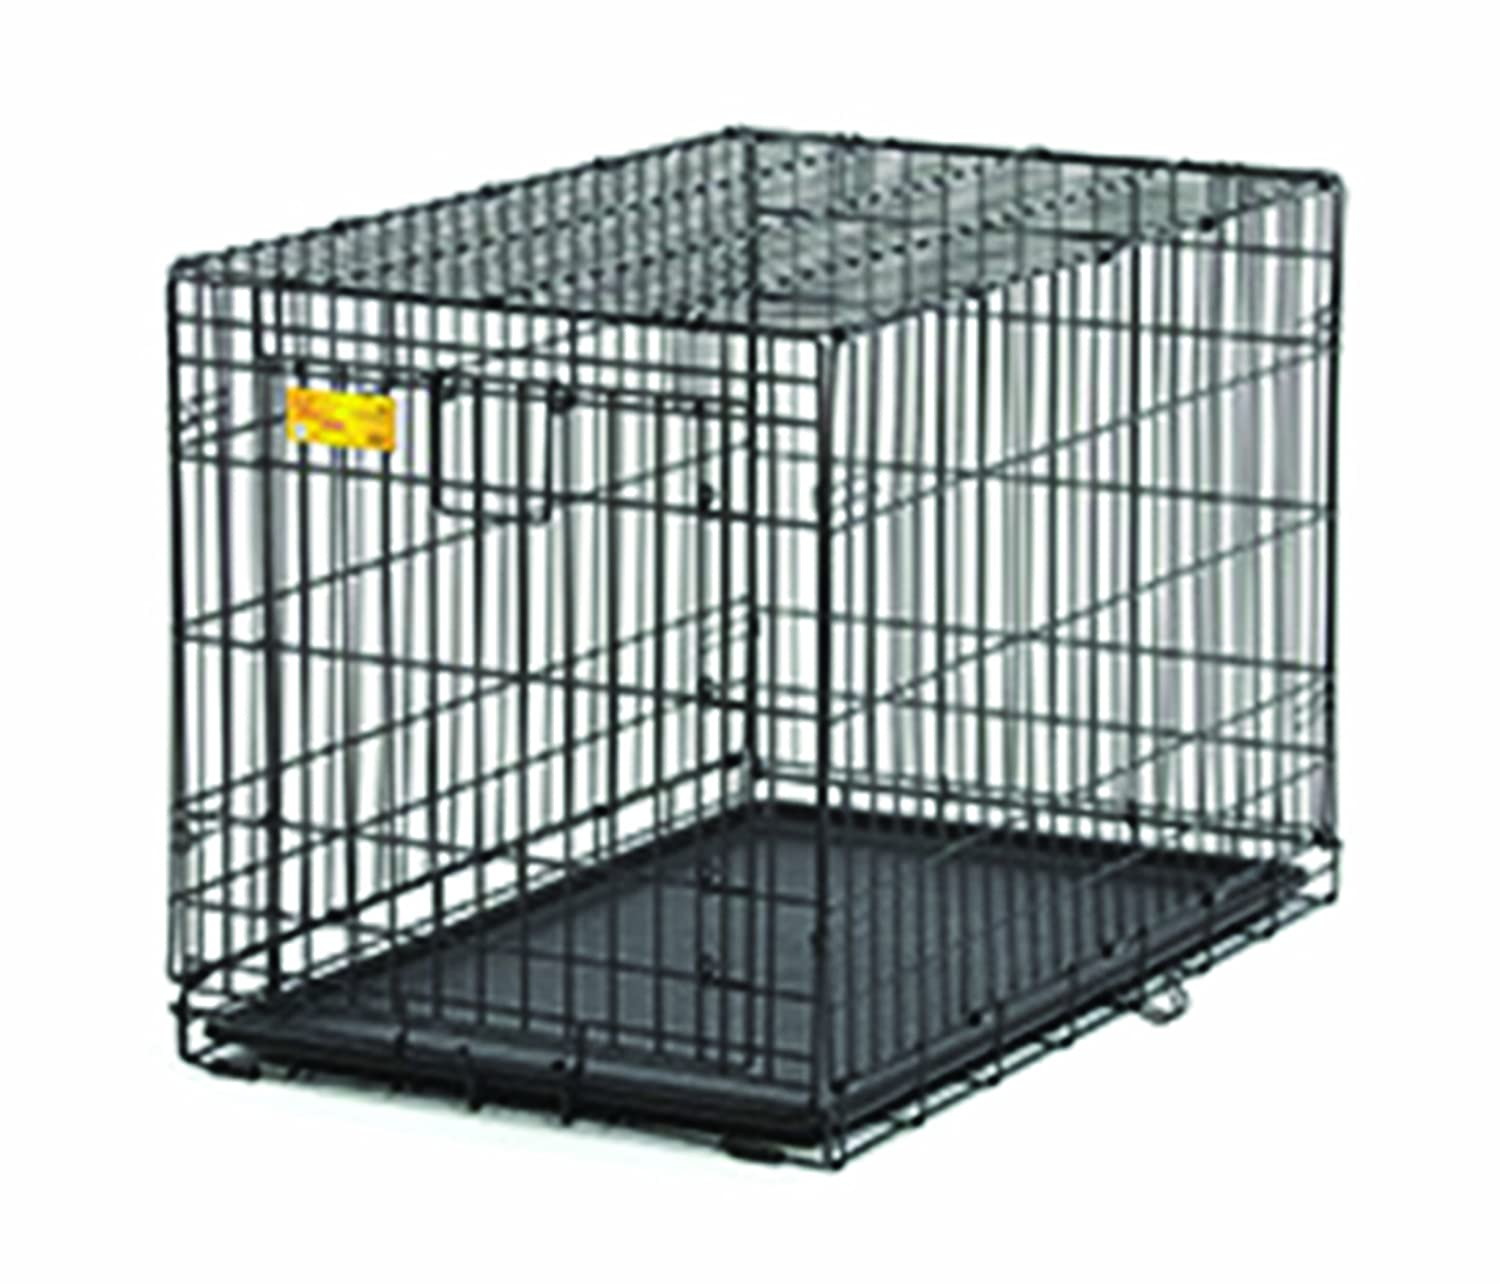 Amazon.com : MidWest Homes for Pets Life Stages ACE Dog Crate, 42 ...